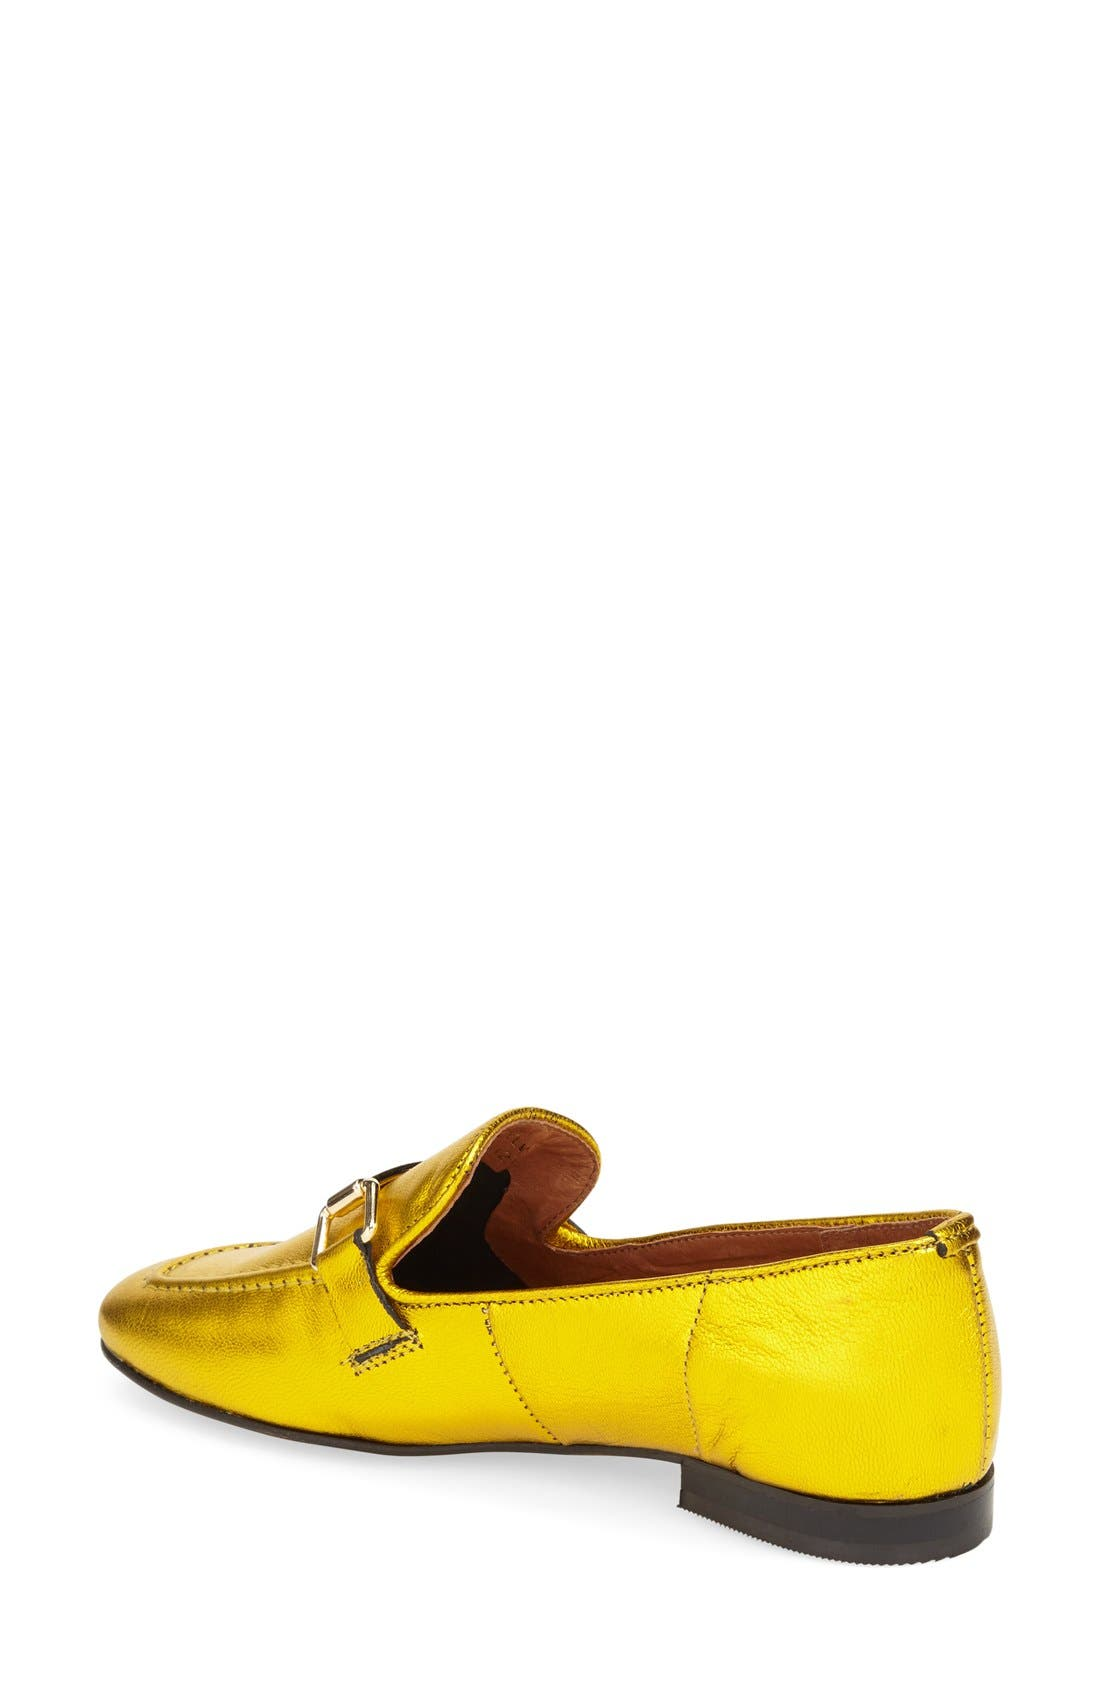 Alternate Image 2  - Topshop 'Karter' Square Toe Loafer (Women)